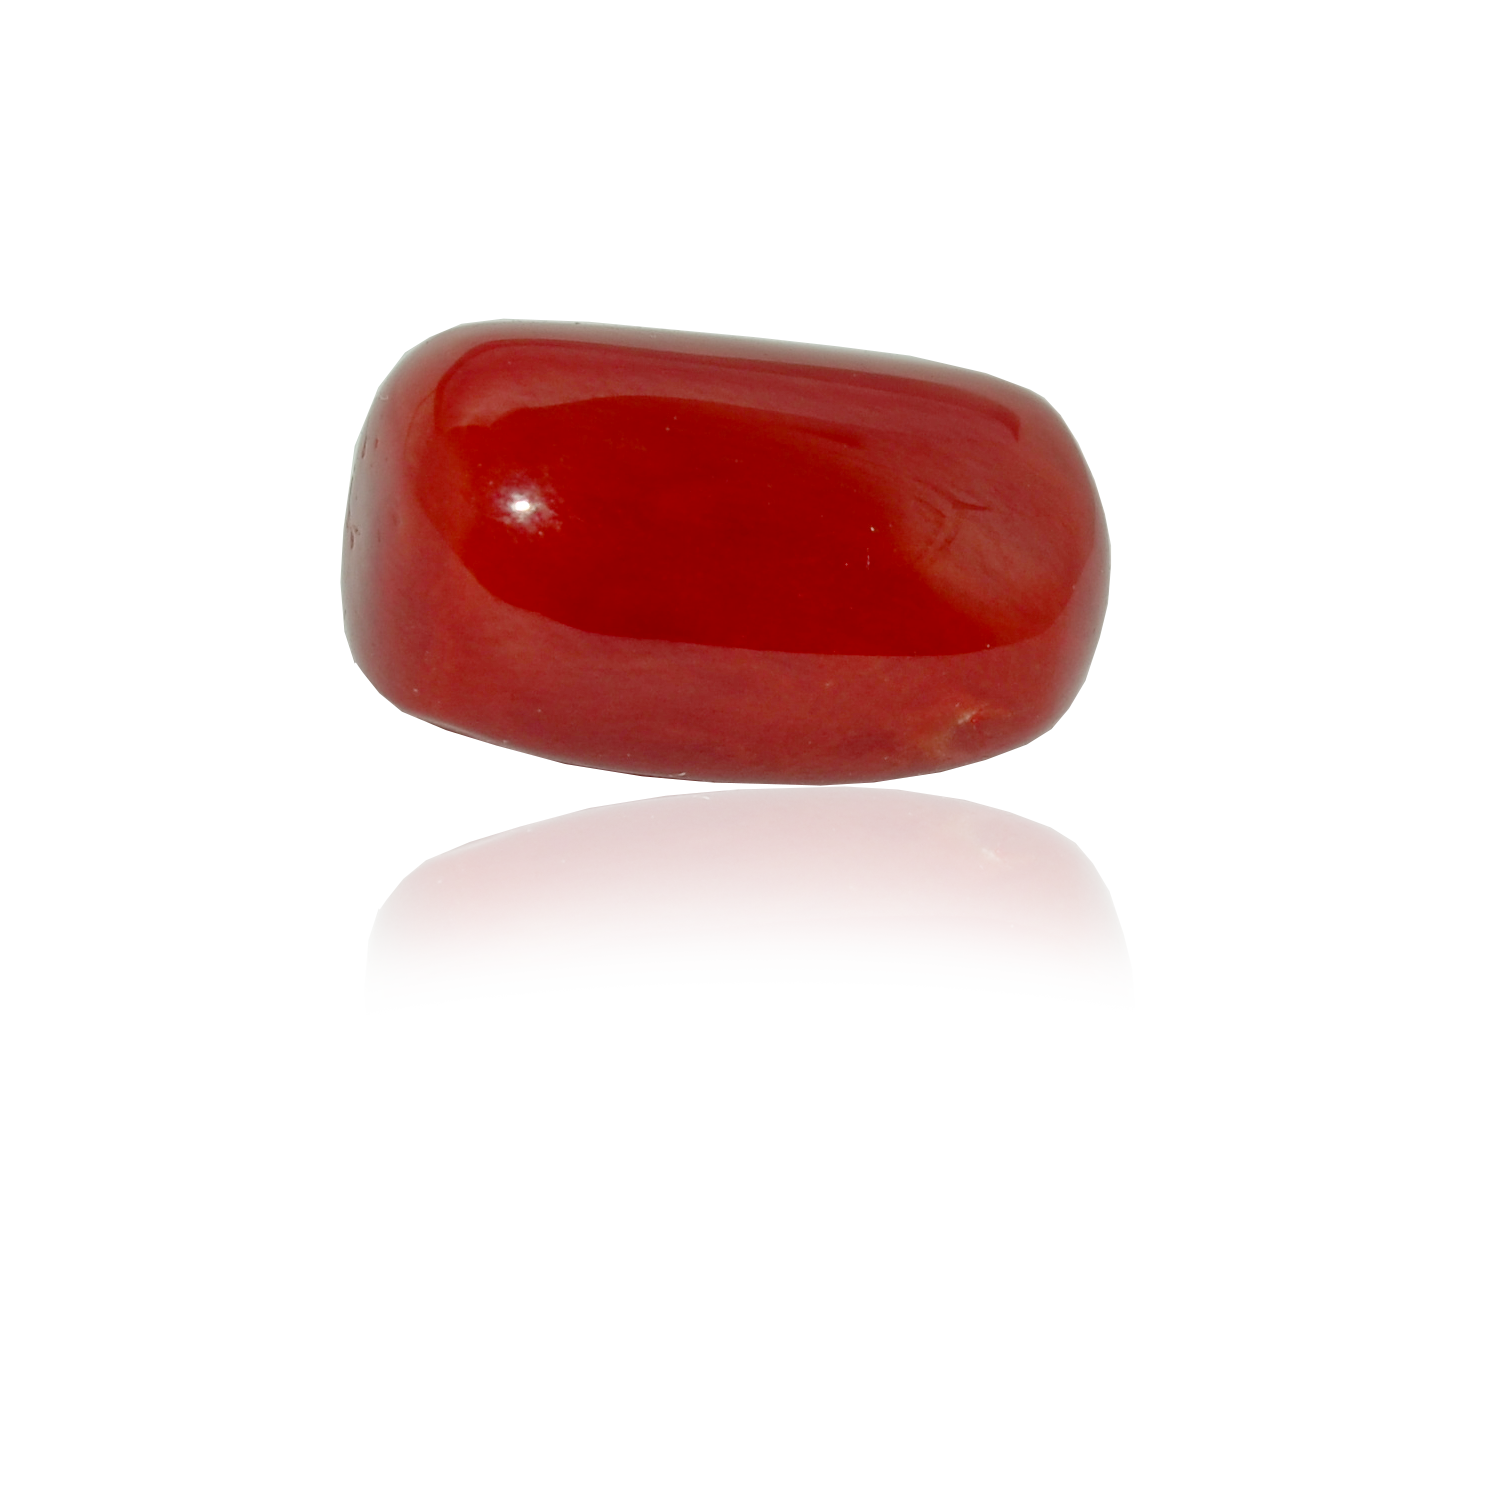 18.20 CARAT, OVAL CABOCHON CUT NATURAL RED CORAL